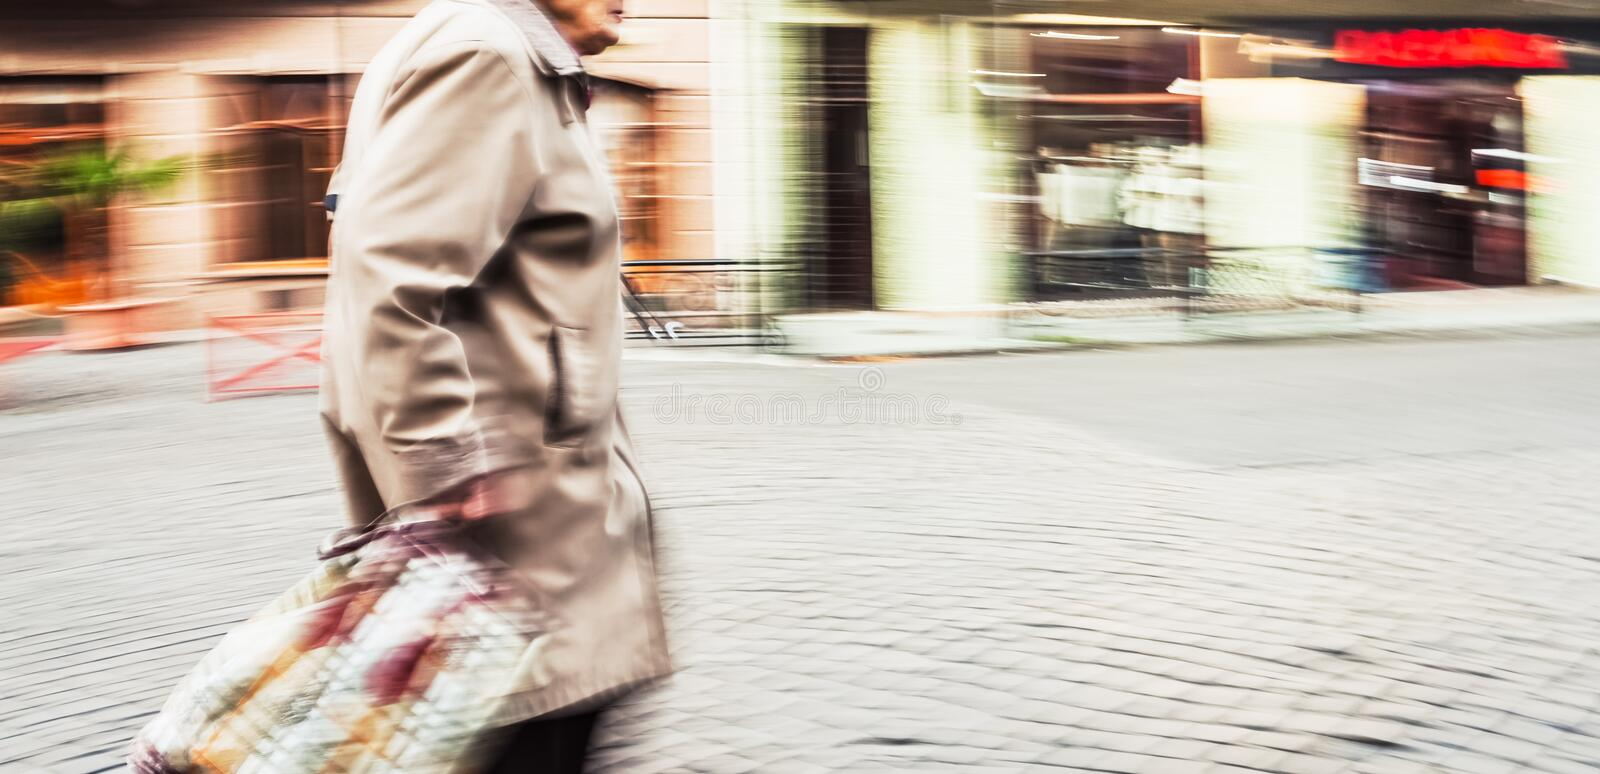 Old woman in motion blur royalty free stock images